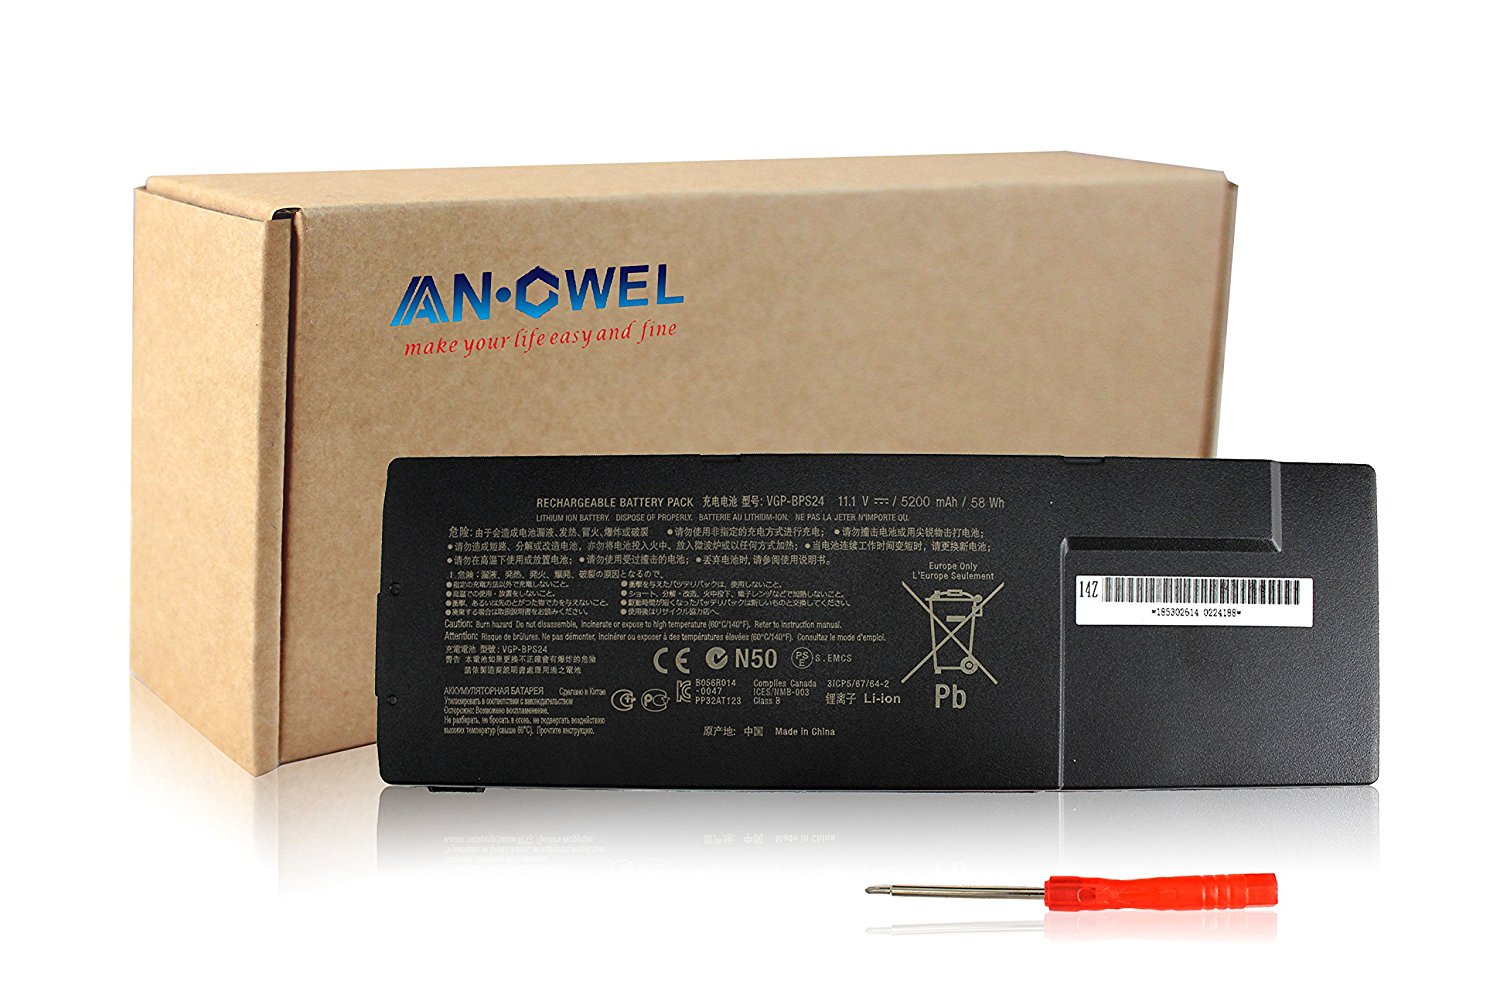 Angwel Laptop Battery Replacement for SONY VAIO SA Series VGP-BPS24 1 Year Warranty